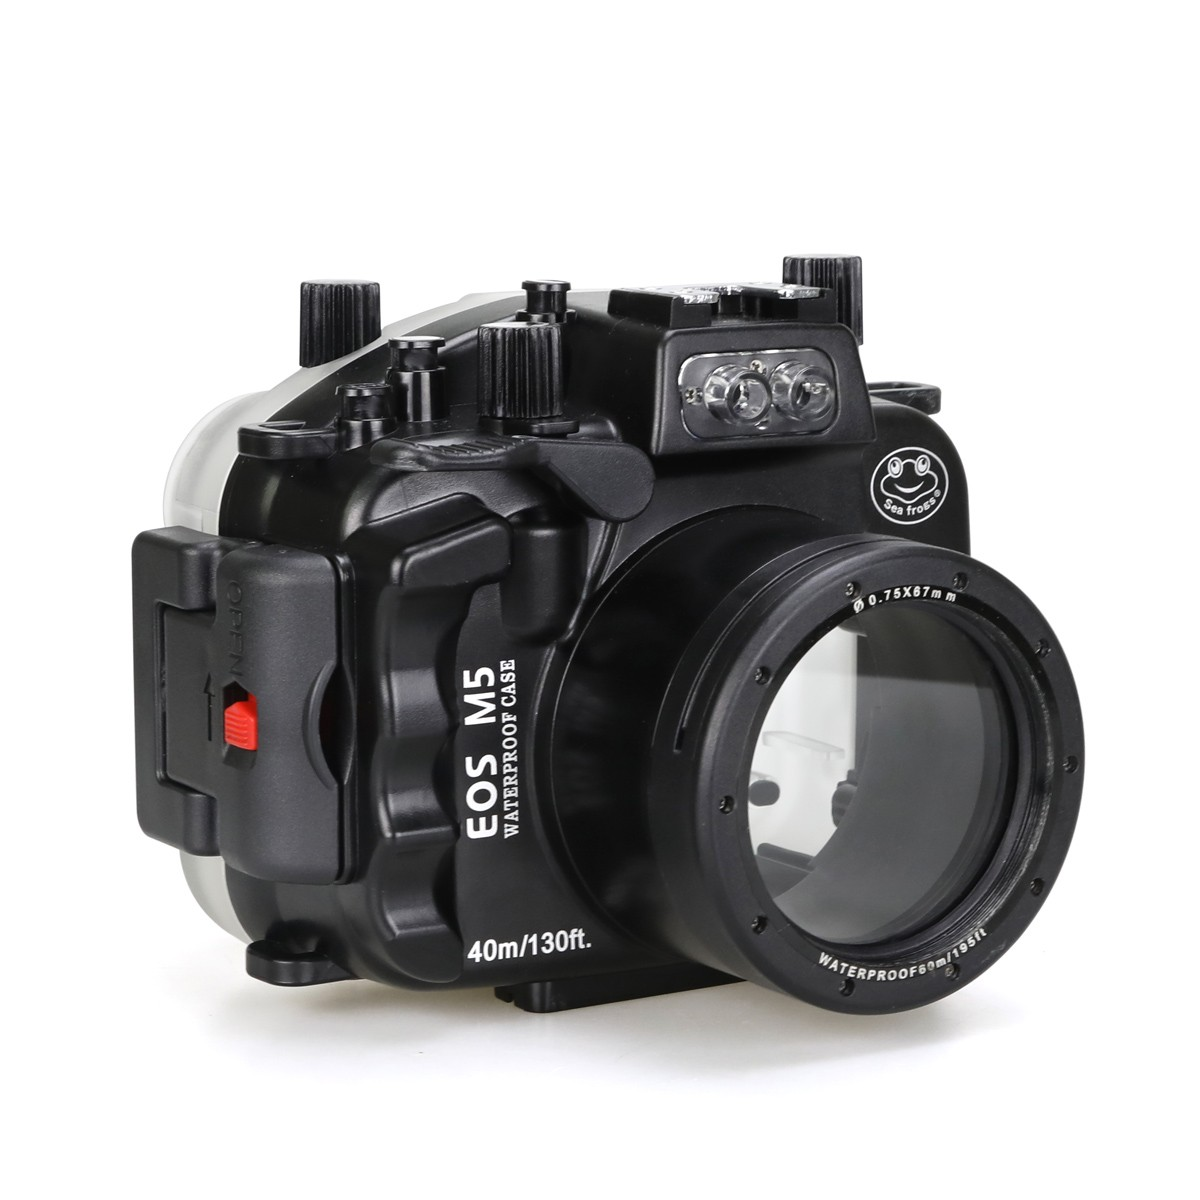 SeaFrogs 40m/130ft Underwater Camera Housing For Canon EOS M5 18-55mm Lens Waterproof Bags Case with WA-3 Wire Angle Dome Port meikon 40m waterproof underwater housing case for canon eos m 18 55mm